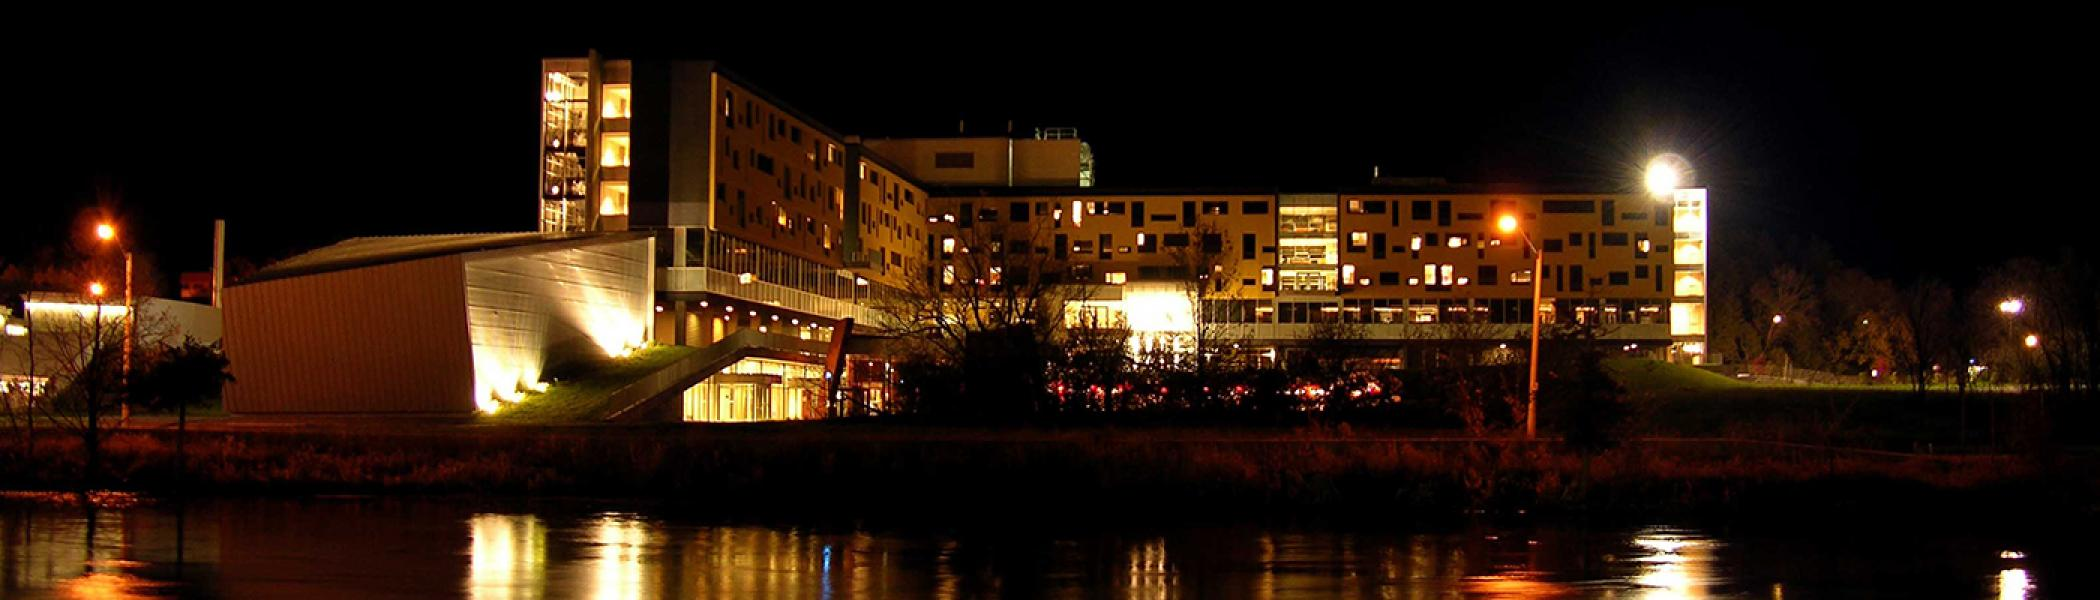 Gowski College in the moonlight from across the Otonabee river